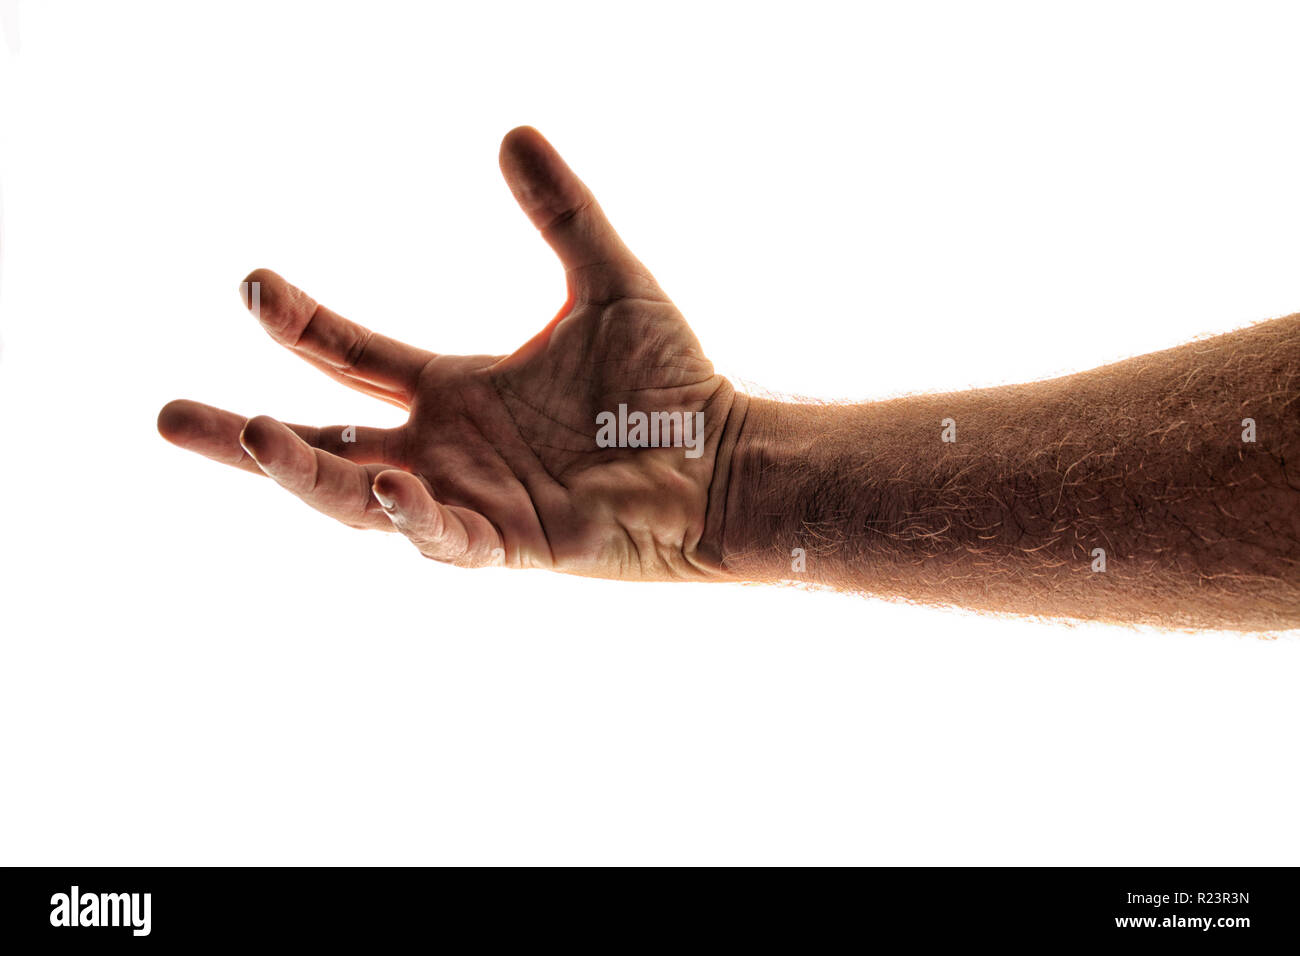 Backlit image of man's arm reaching out as if trying to grab at somethings, against white, not isolated, highly detailed fingers, hand wrist and forea - Stock Image